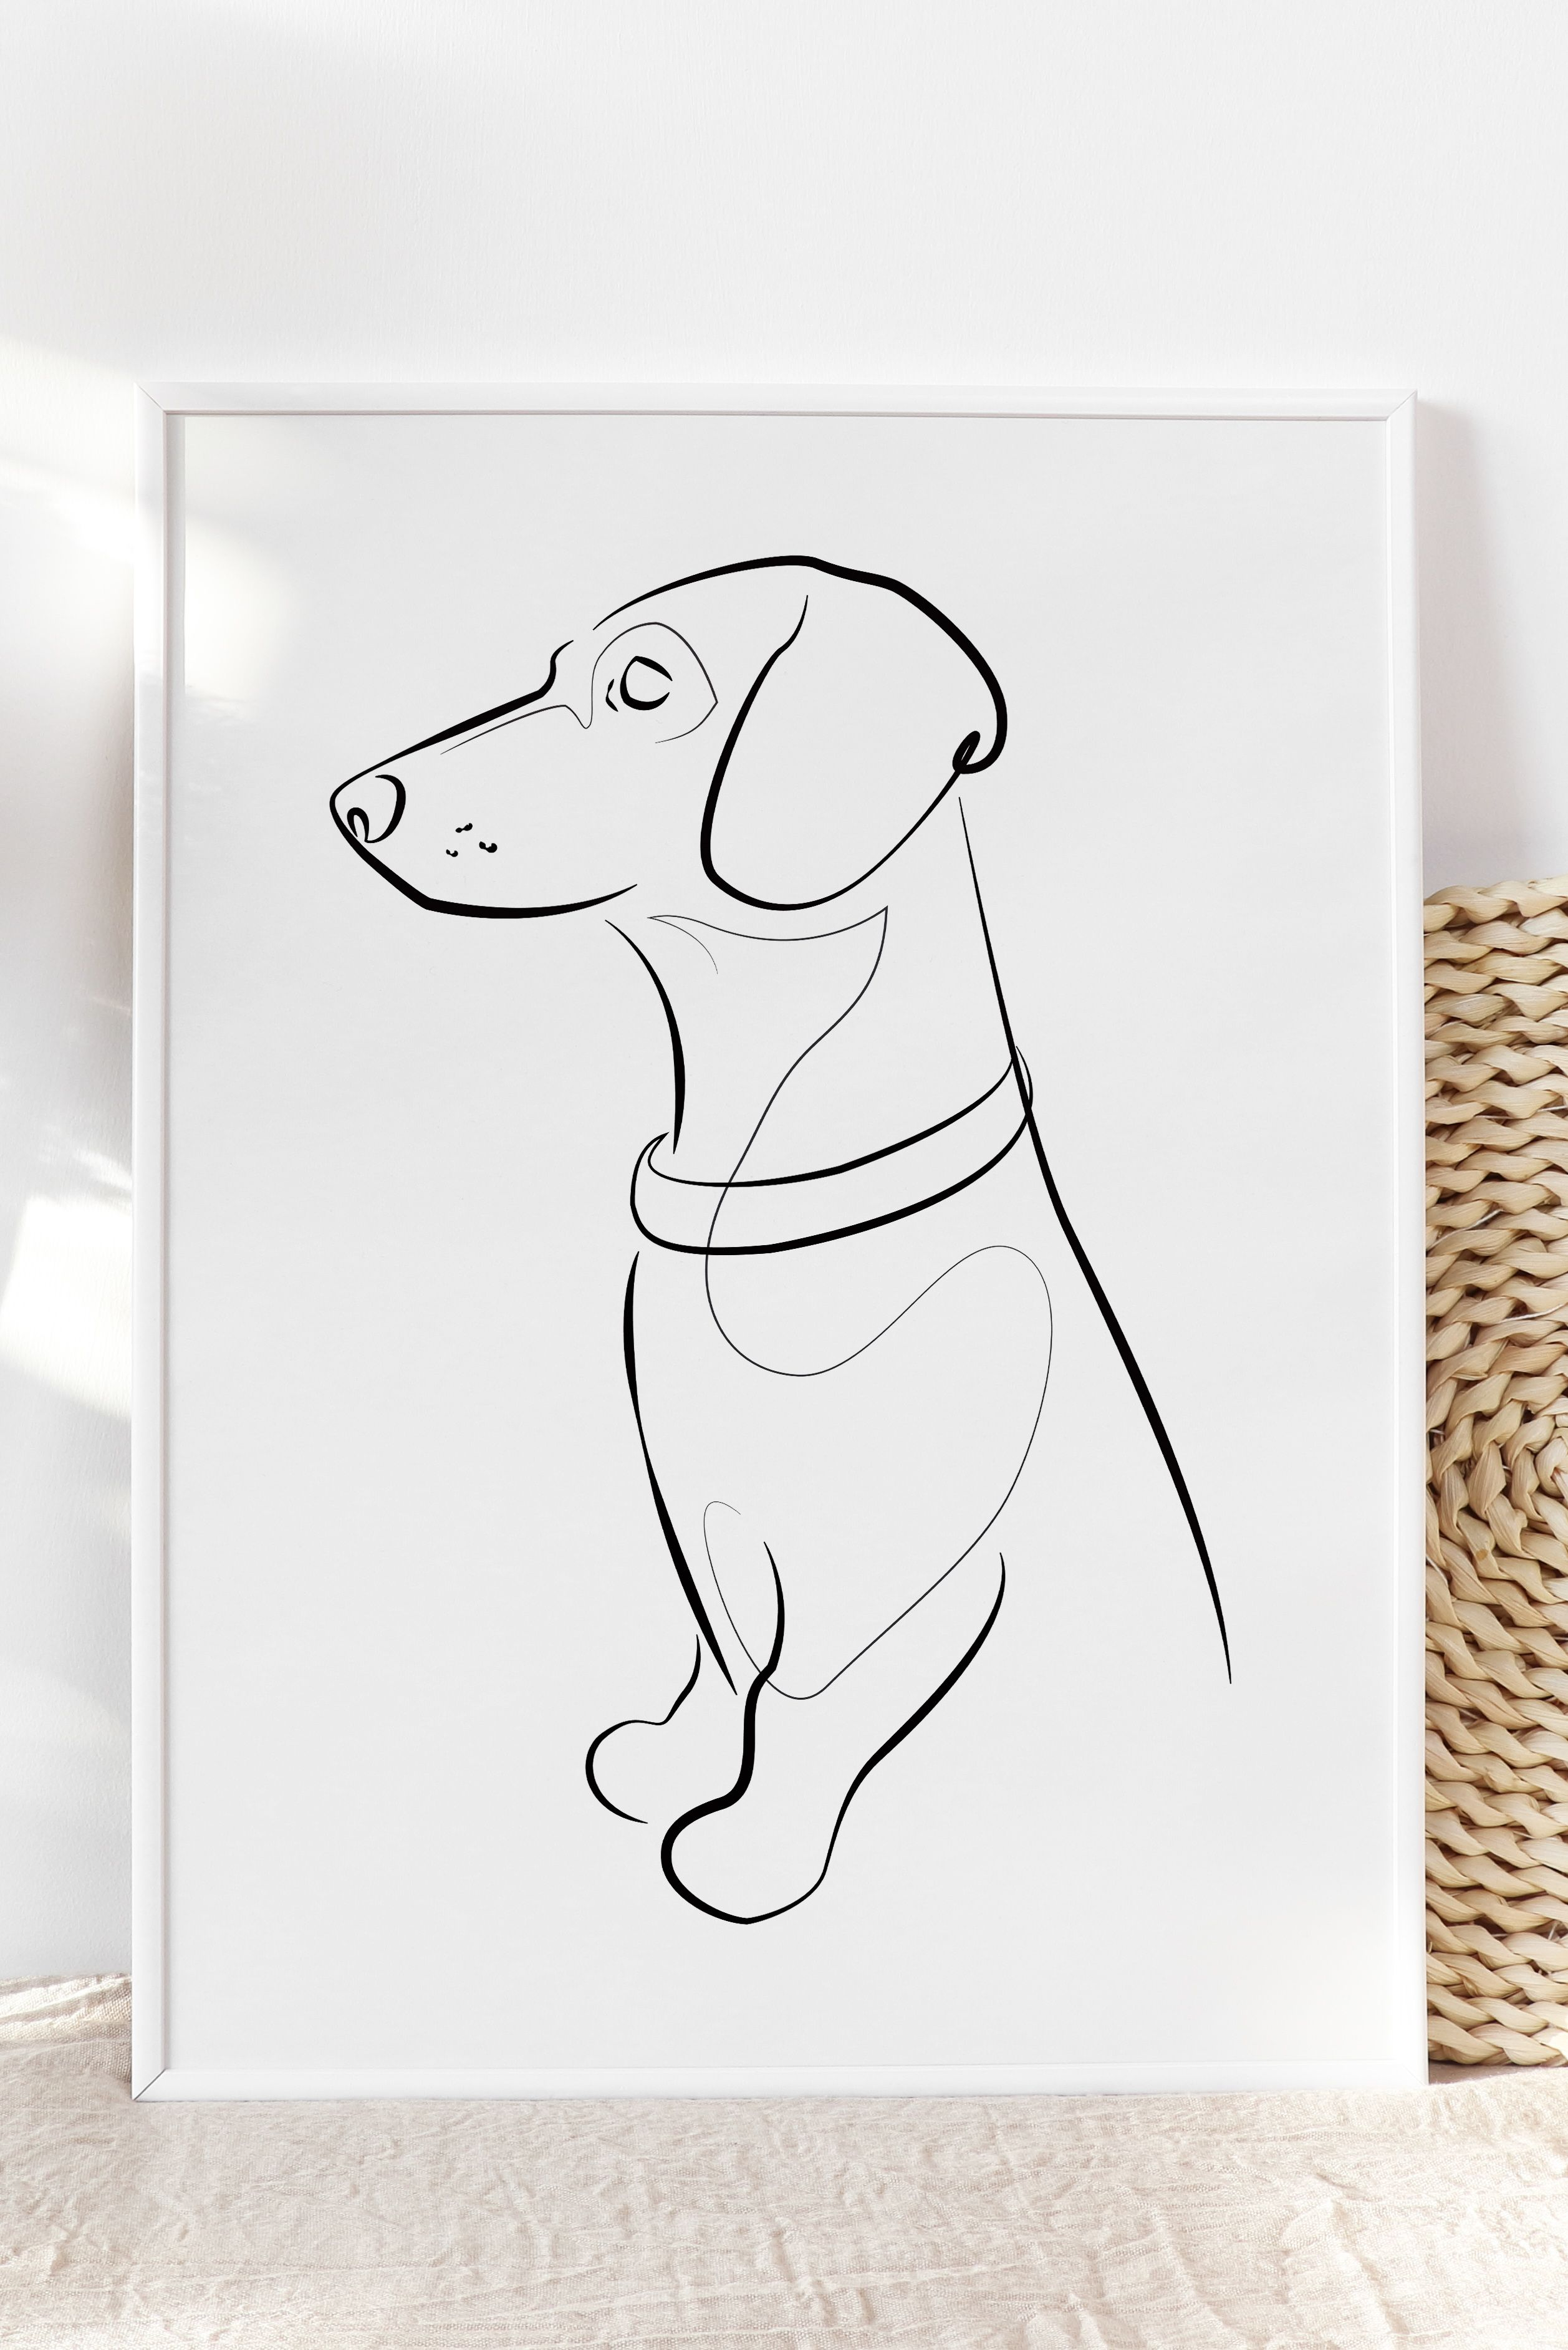 Dachshund One Line Drawing Dachshund Art Dachshund Giftdog Etsy In 2020 Dog Print Art Dachshund Art Line Drawing